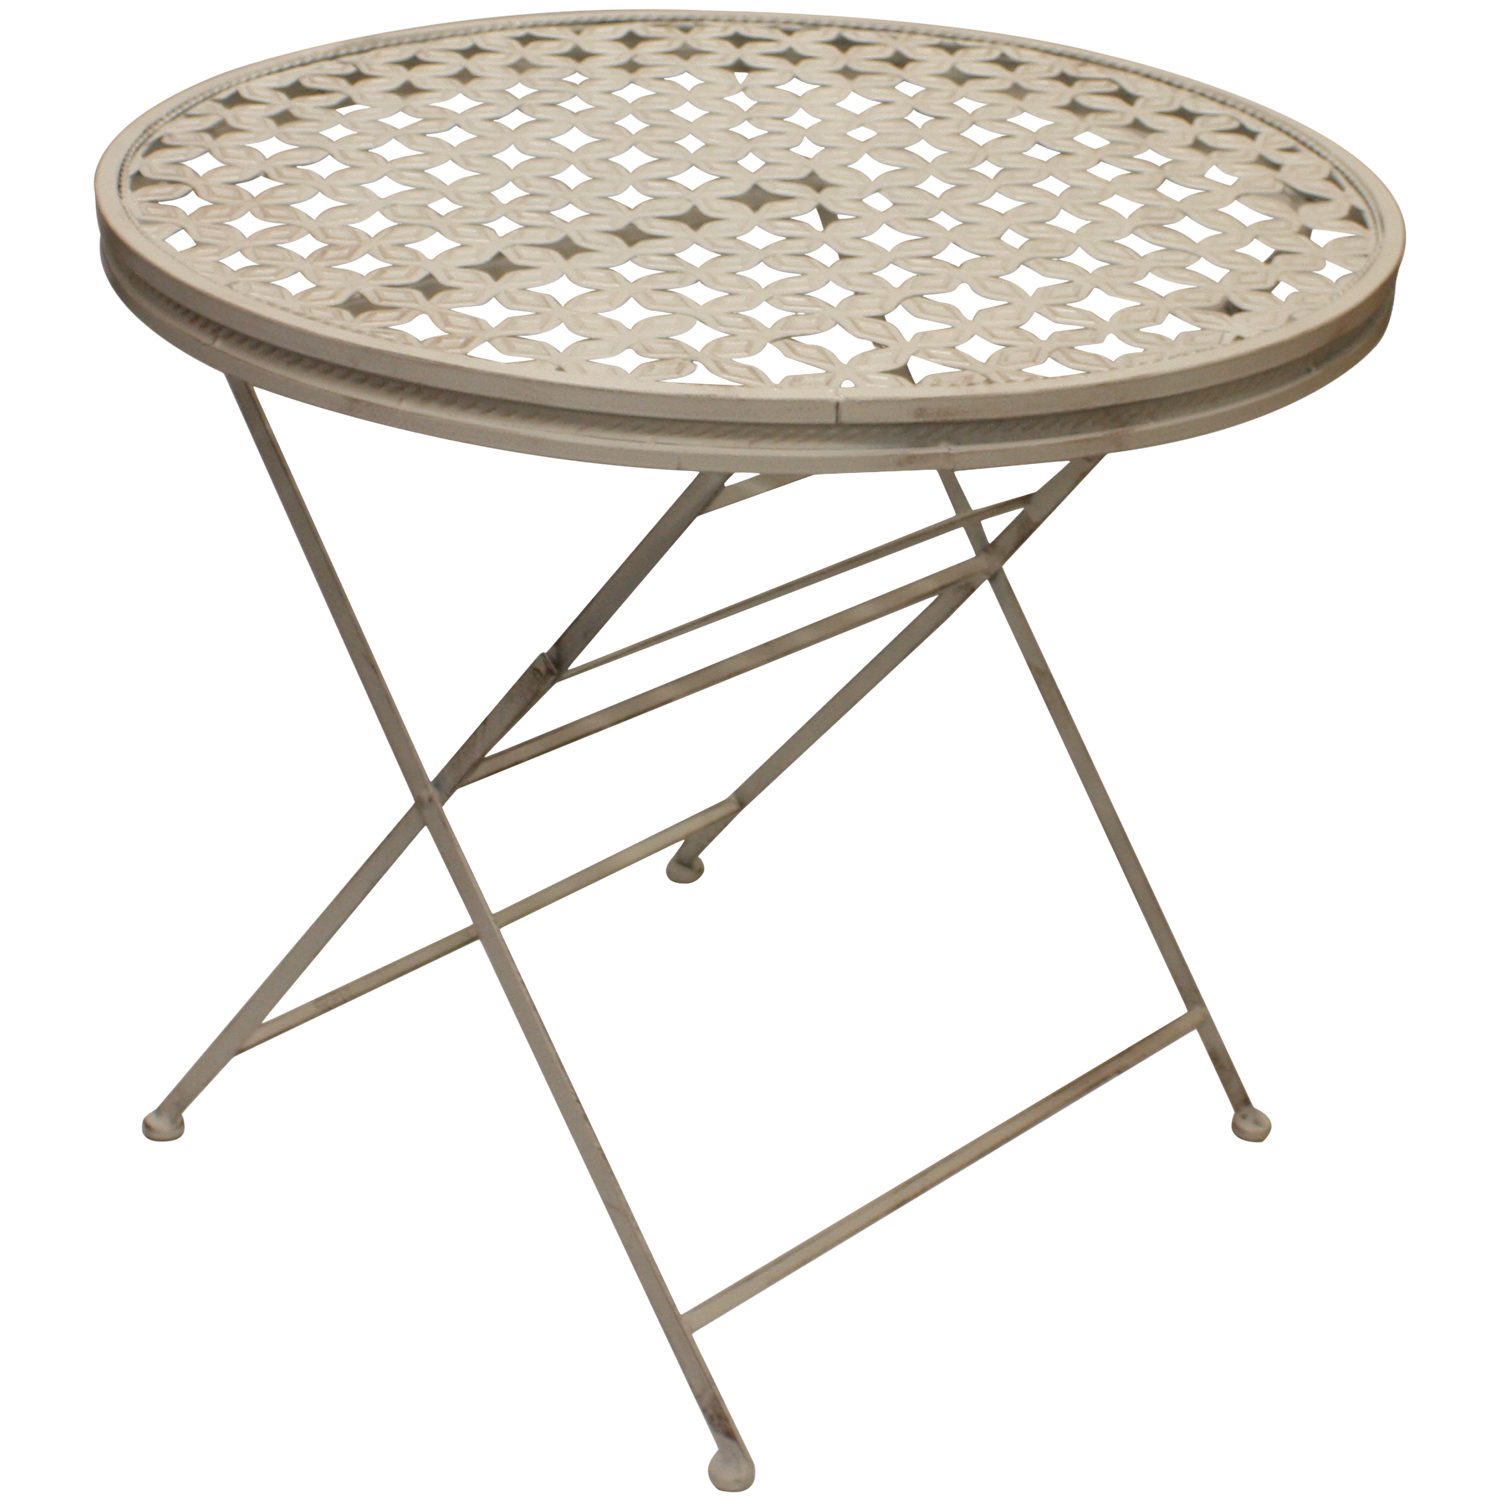 round metal patio table suncoast cast aluminum maribelle folding garden dining outdoor furniture end glass top len graphy farmhouse kitchen plans tables calgary marble upholstered